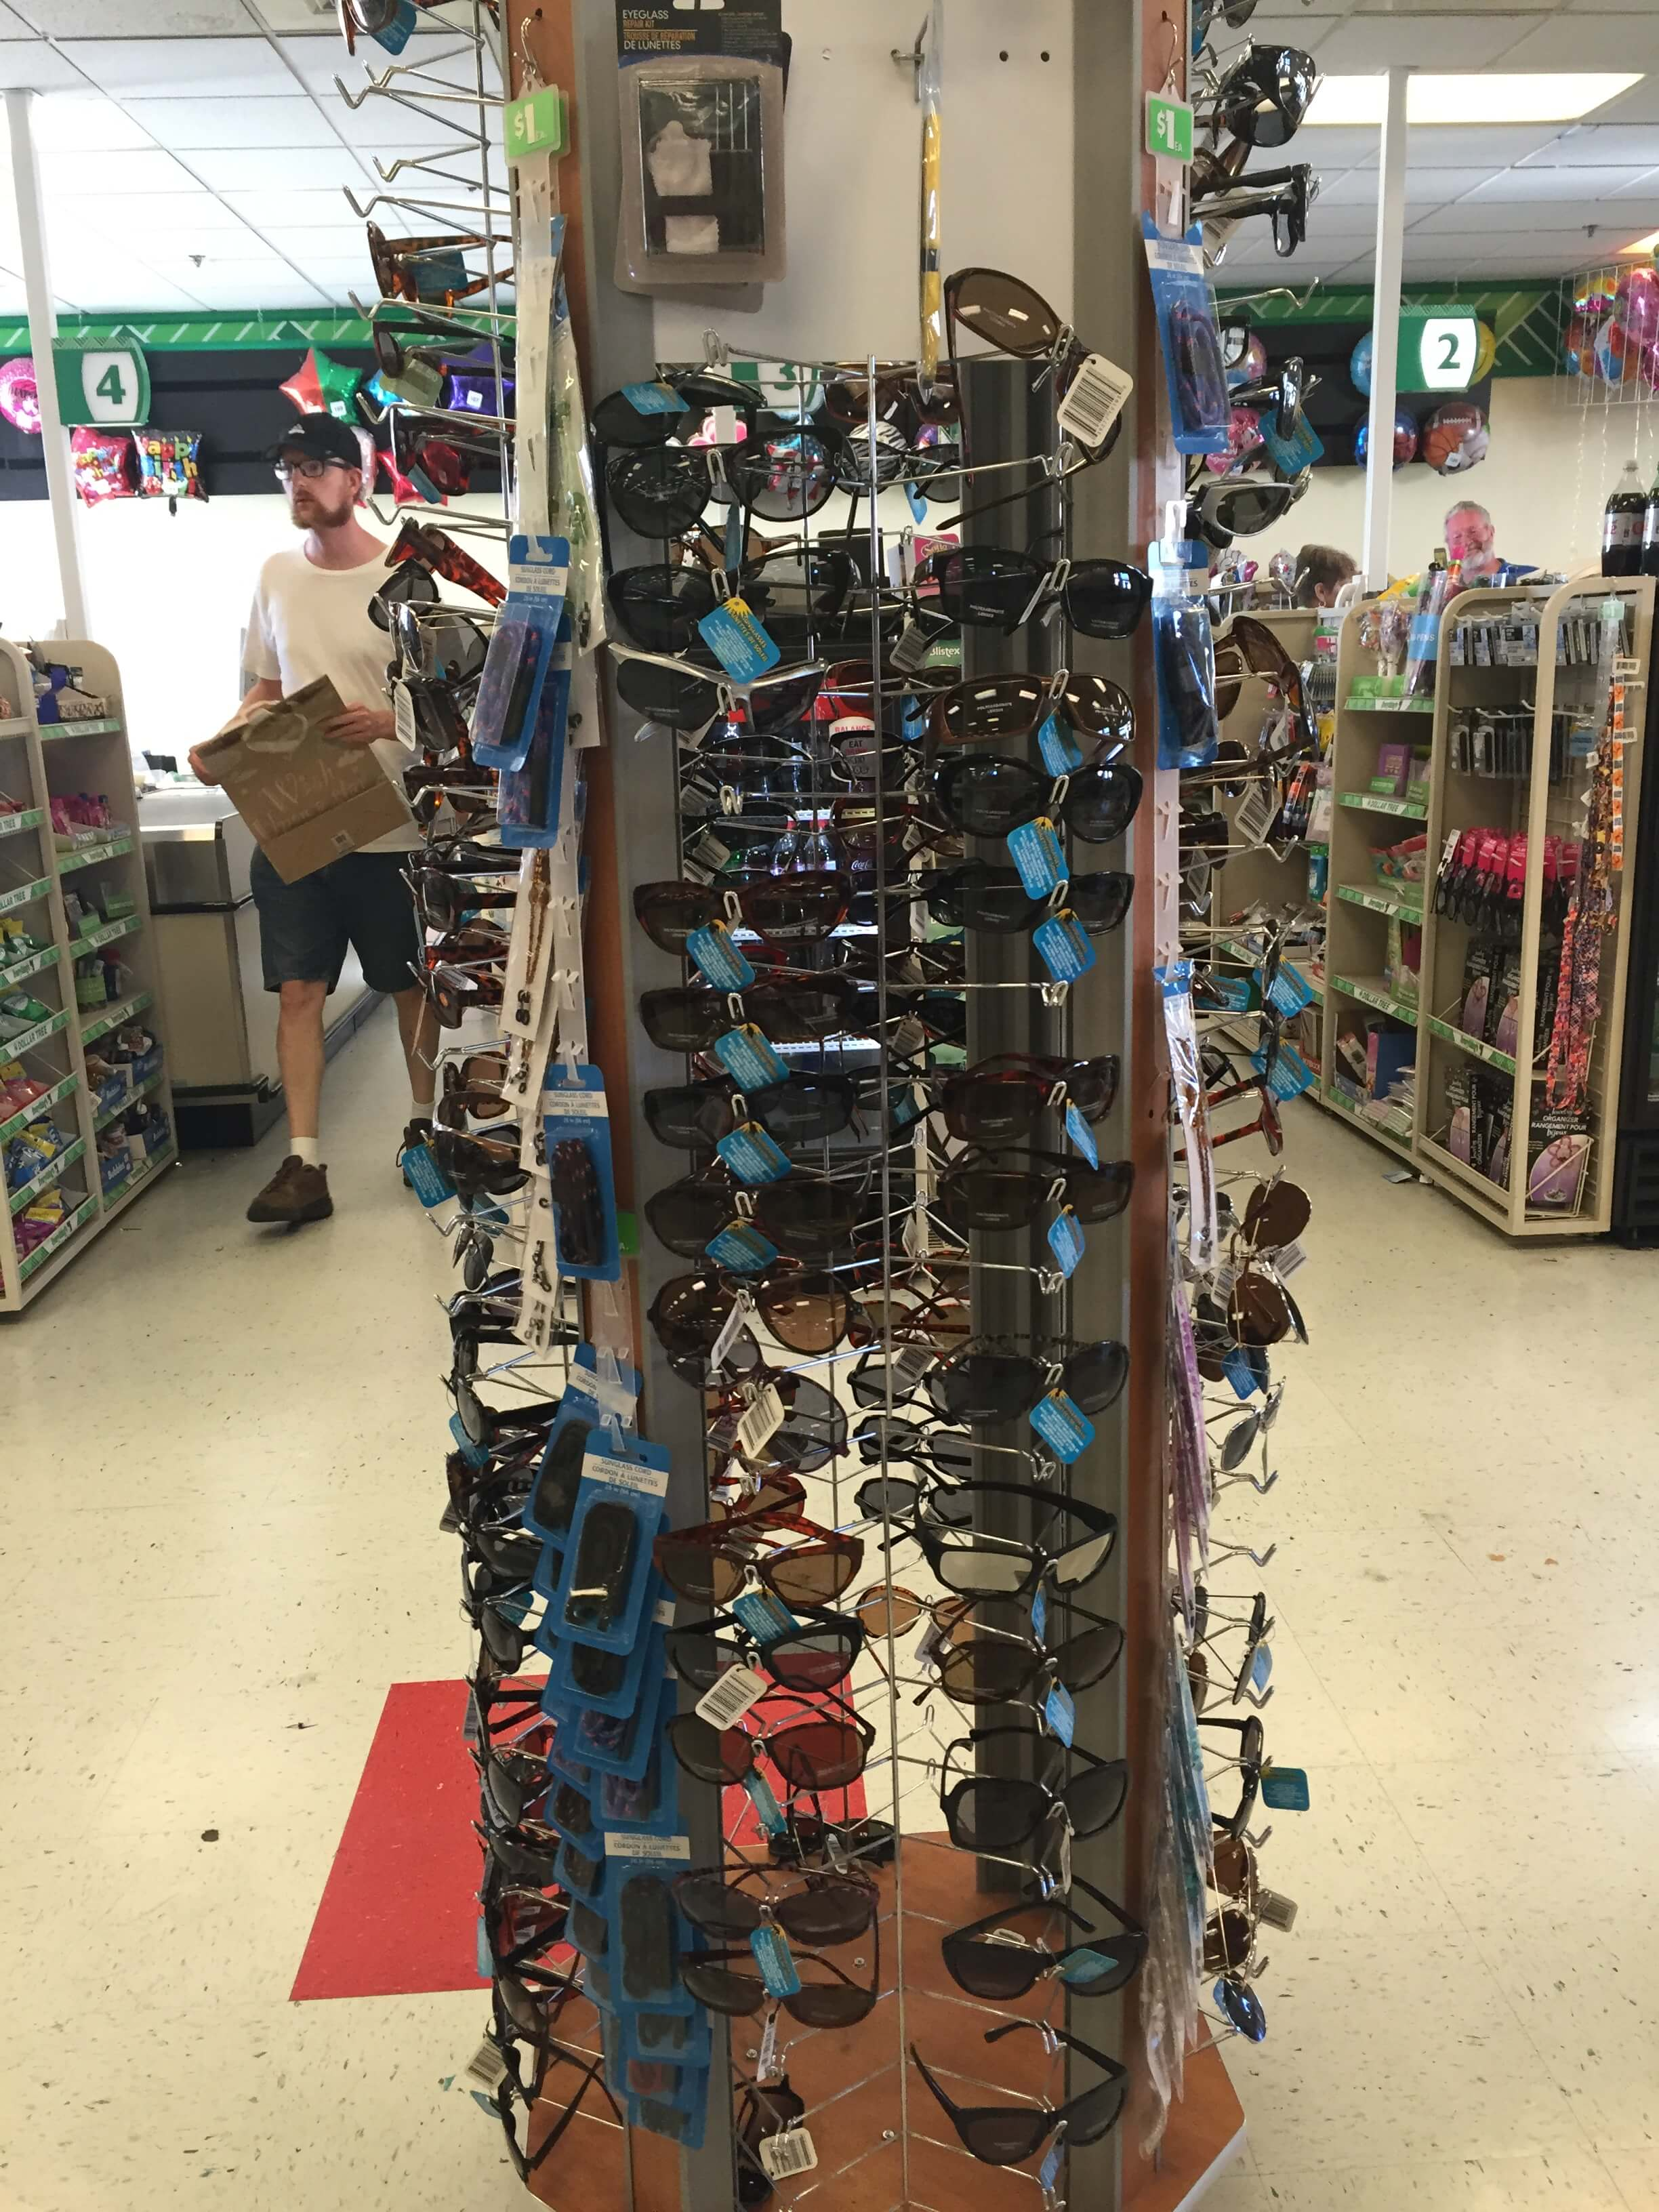 sunglasses at the dollar store